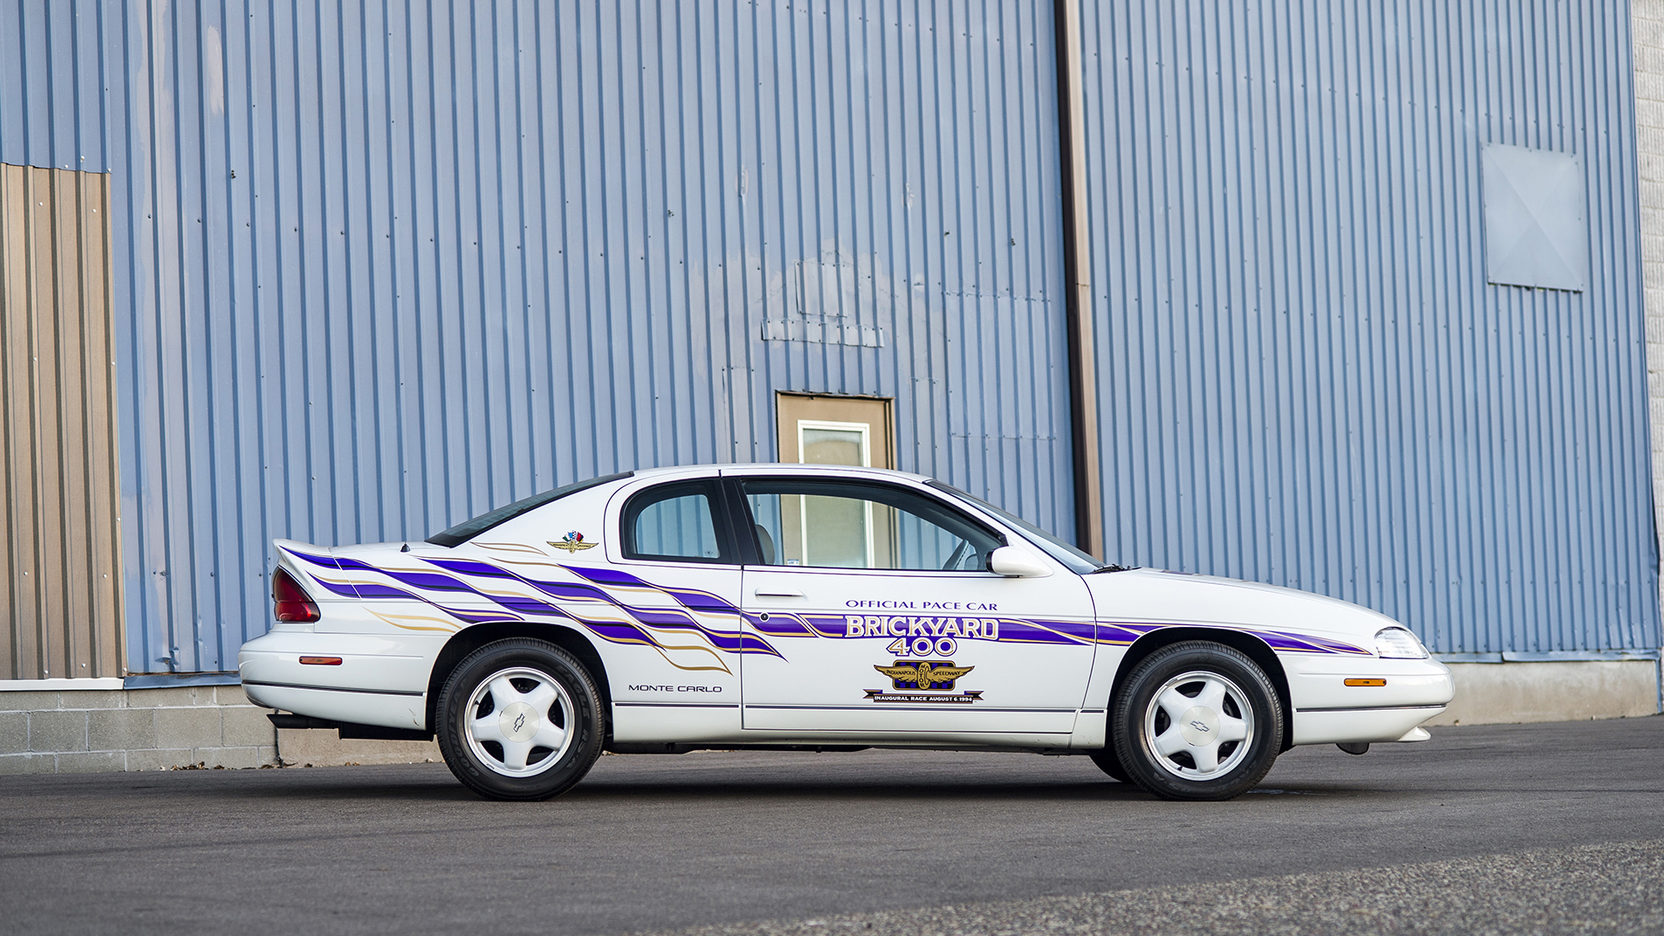 hight resolution of 1995 chevrolet monte carlo z34 pace car edition 2 full screen